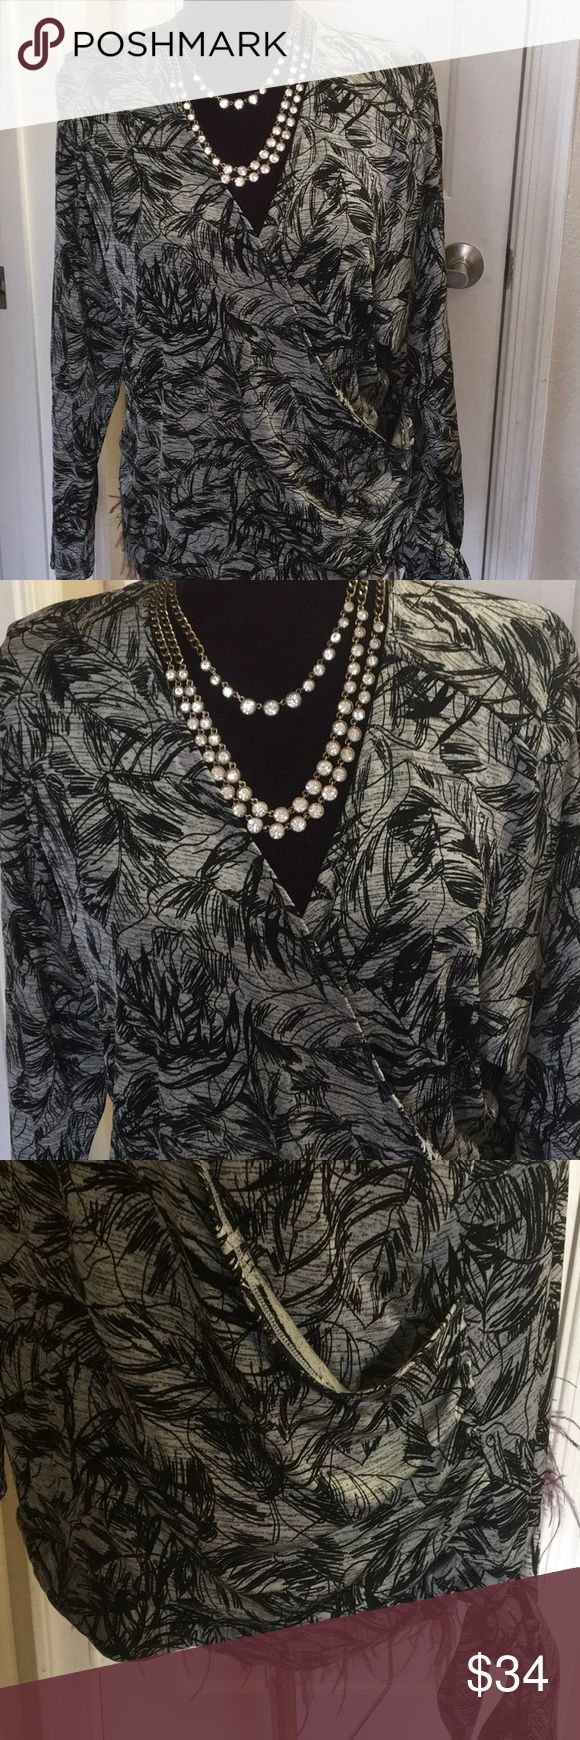 """COLDWATER CREEK HOLIDAY GLAM TOP SILVER BLACK 2X DEEP V neckline long sleeved silky stretchy silver & black design, diagonal wrap look w/ tie at bottom. BLend of acetate, Nylon & Spandex for perfect feel & fit. Size 2X....26 - 30"""" pit- pit...25"""" shoulder - edge, great w black silver Cami underneath if your shy... MINT 🎀❄️🎀❄️🎀 Coldwater Creek Tops"""